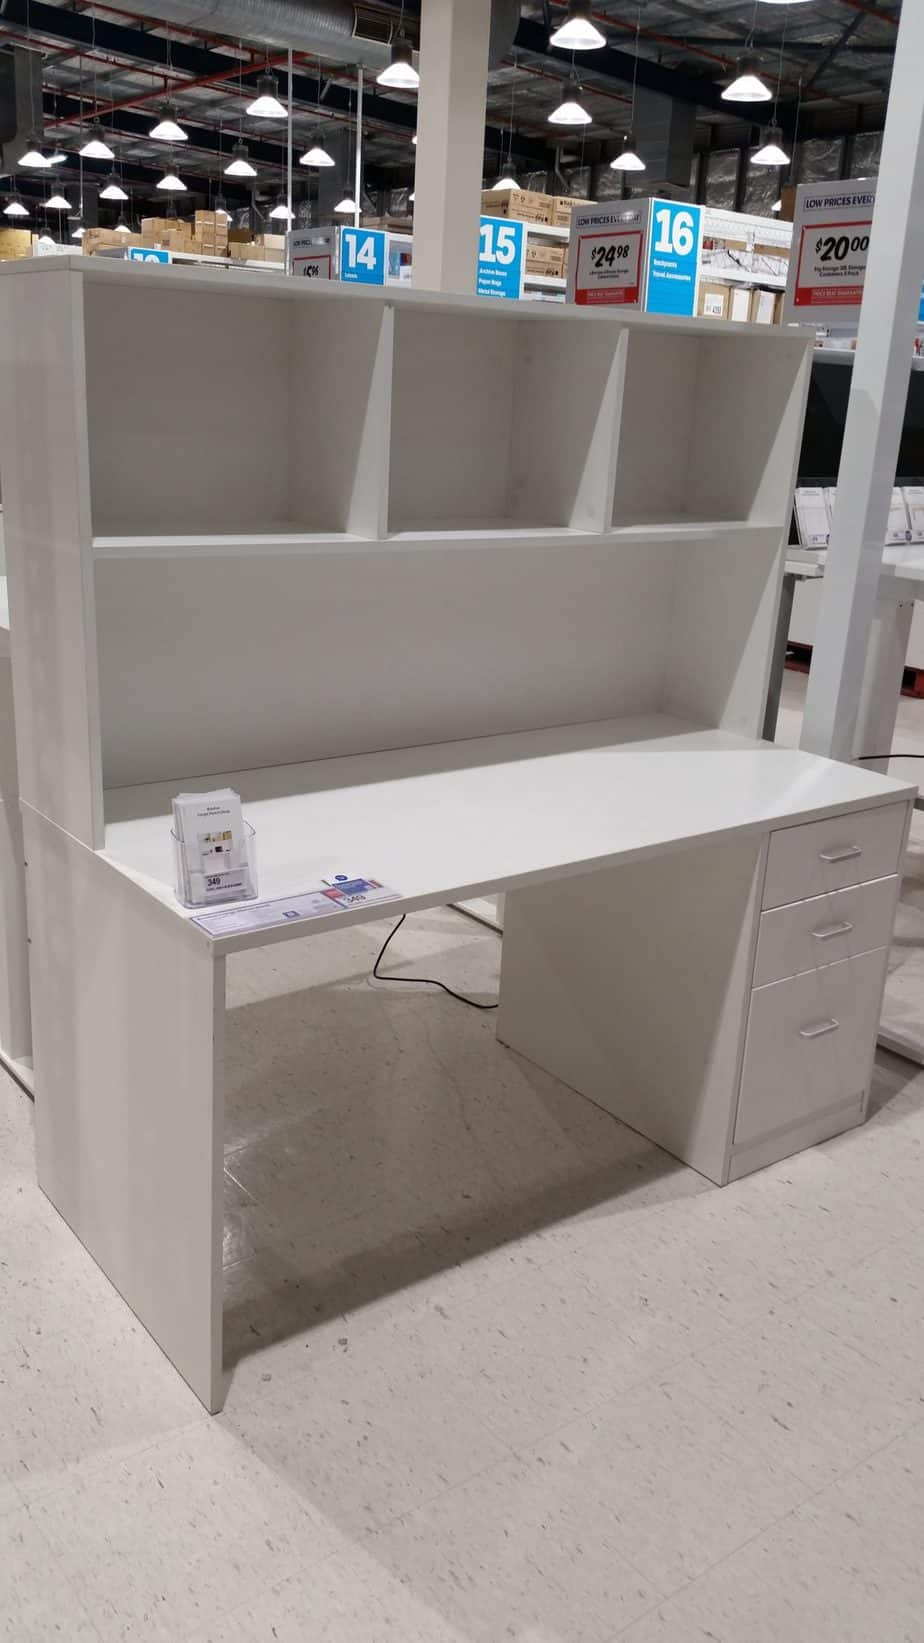 This is another option for a desk in your homeschool room. It can house all books or curricula on the top hutch and all the stationary in the draws.